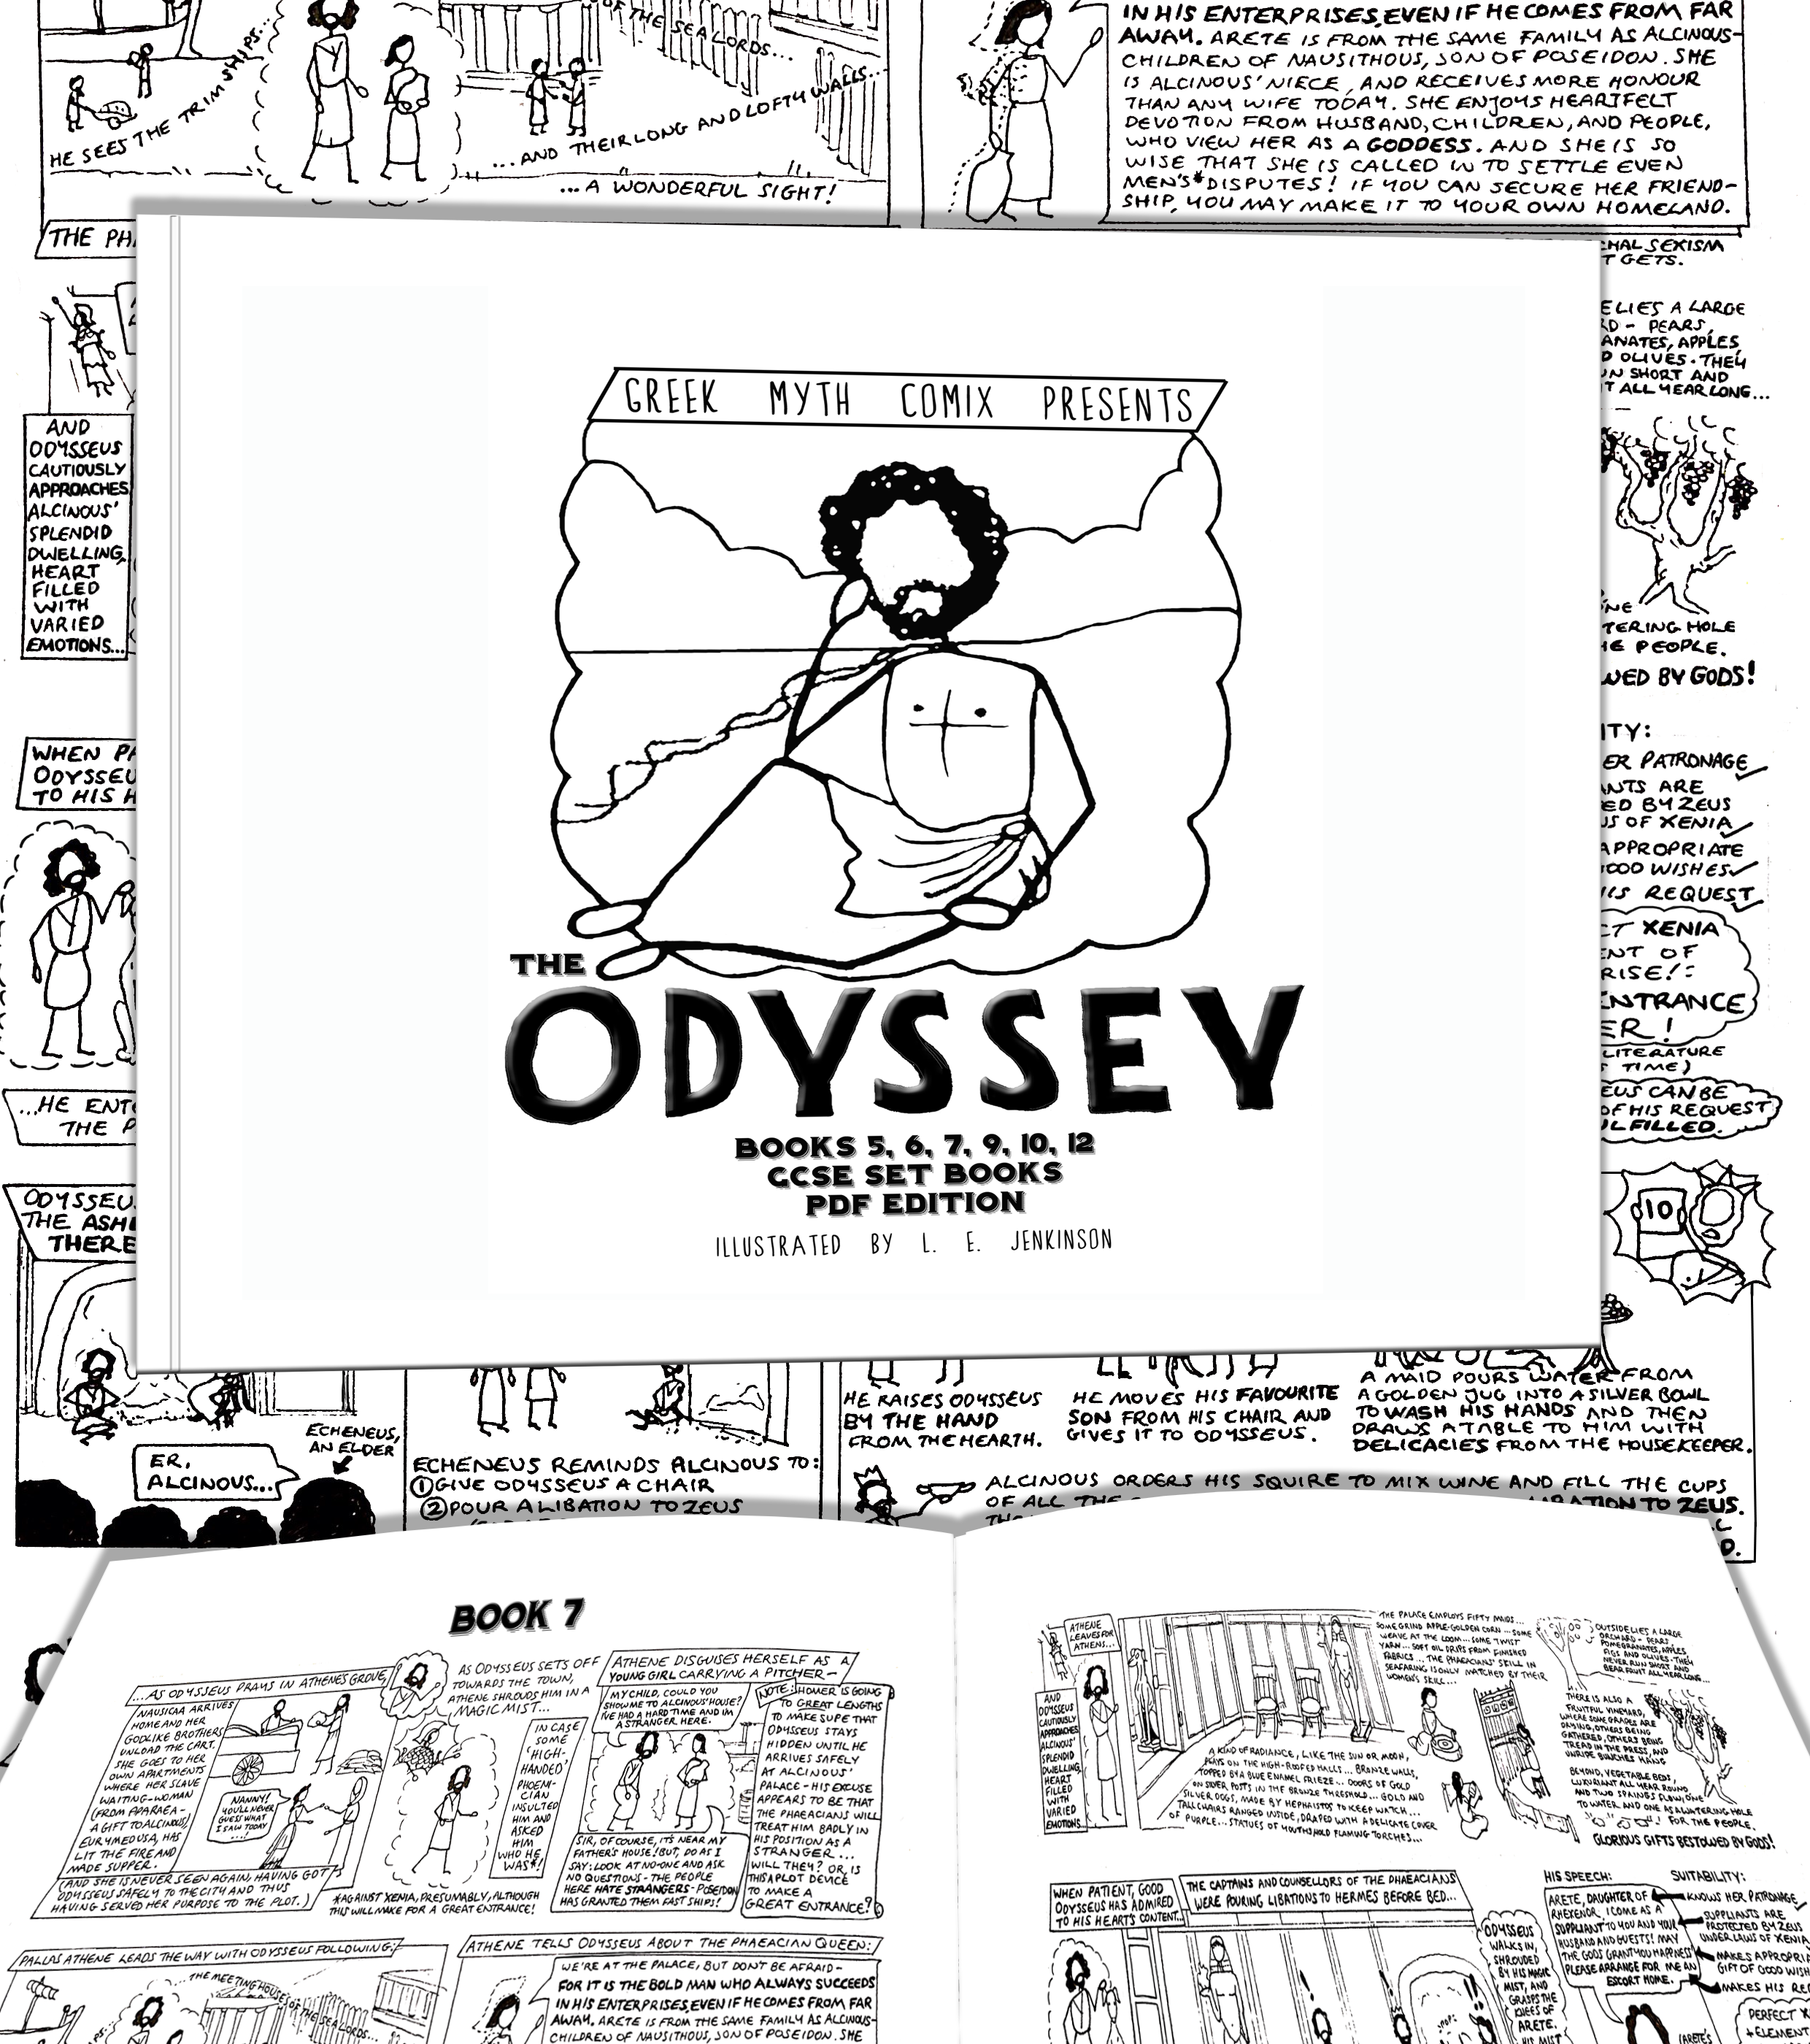 Greek Myth Comix Presents The Odyssey set books for GCSE as a PDF download or class text!